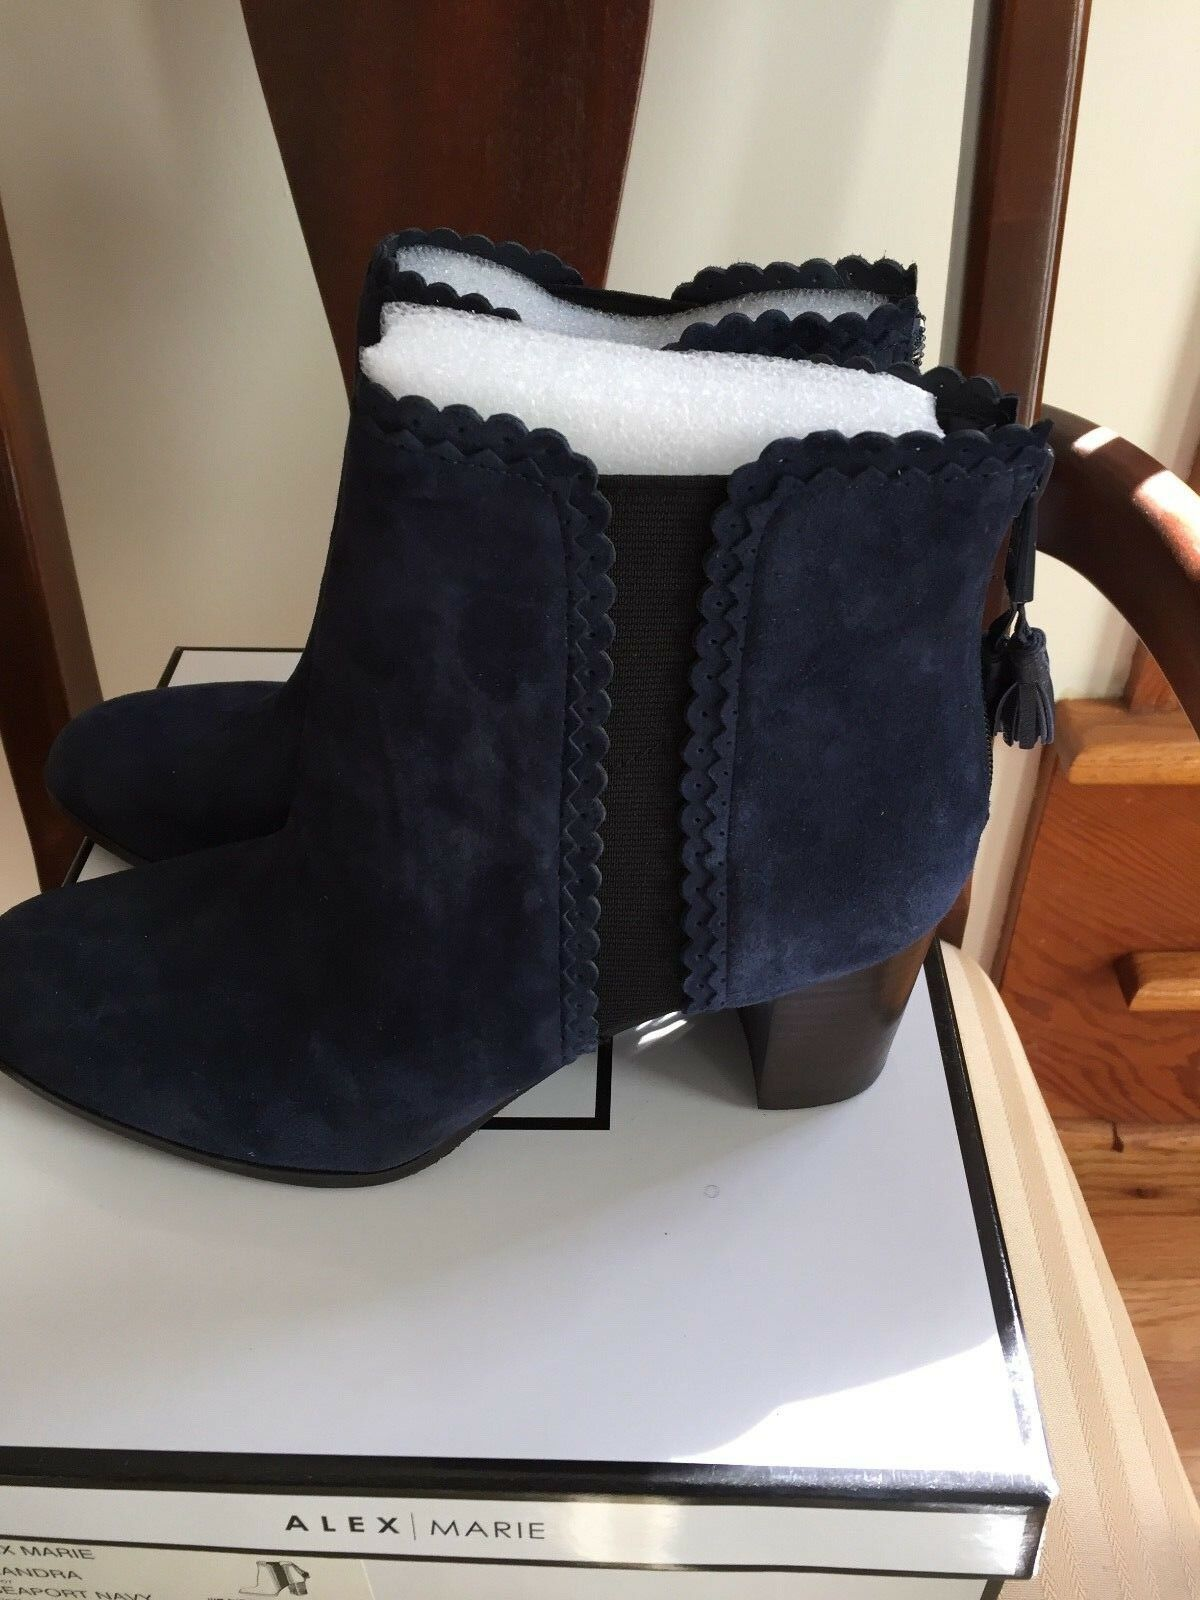 Alex Marie Suede Ankle Boots Navy Sz 9 Medium New in Box